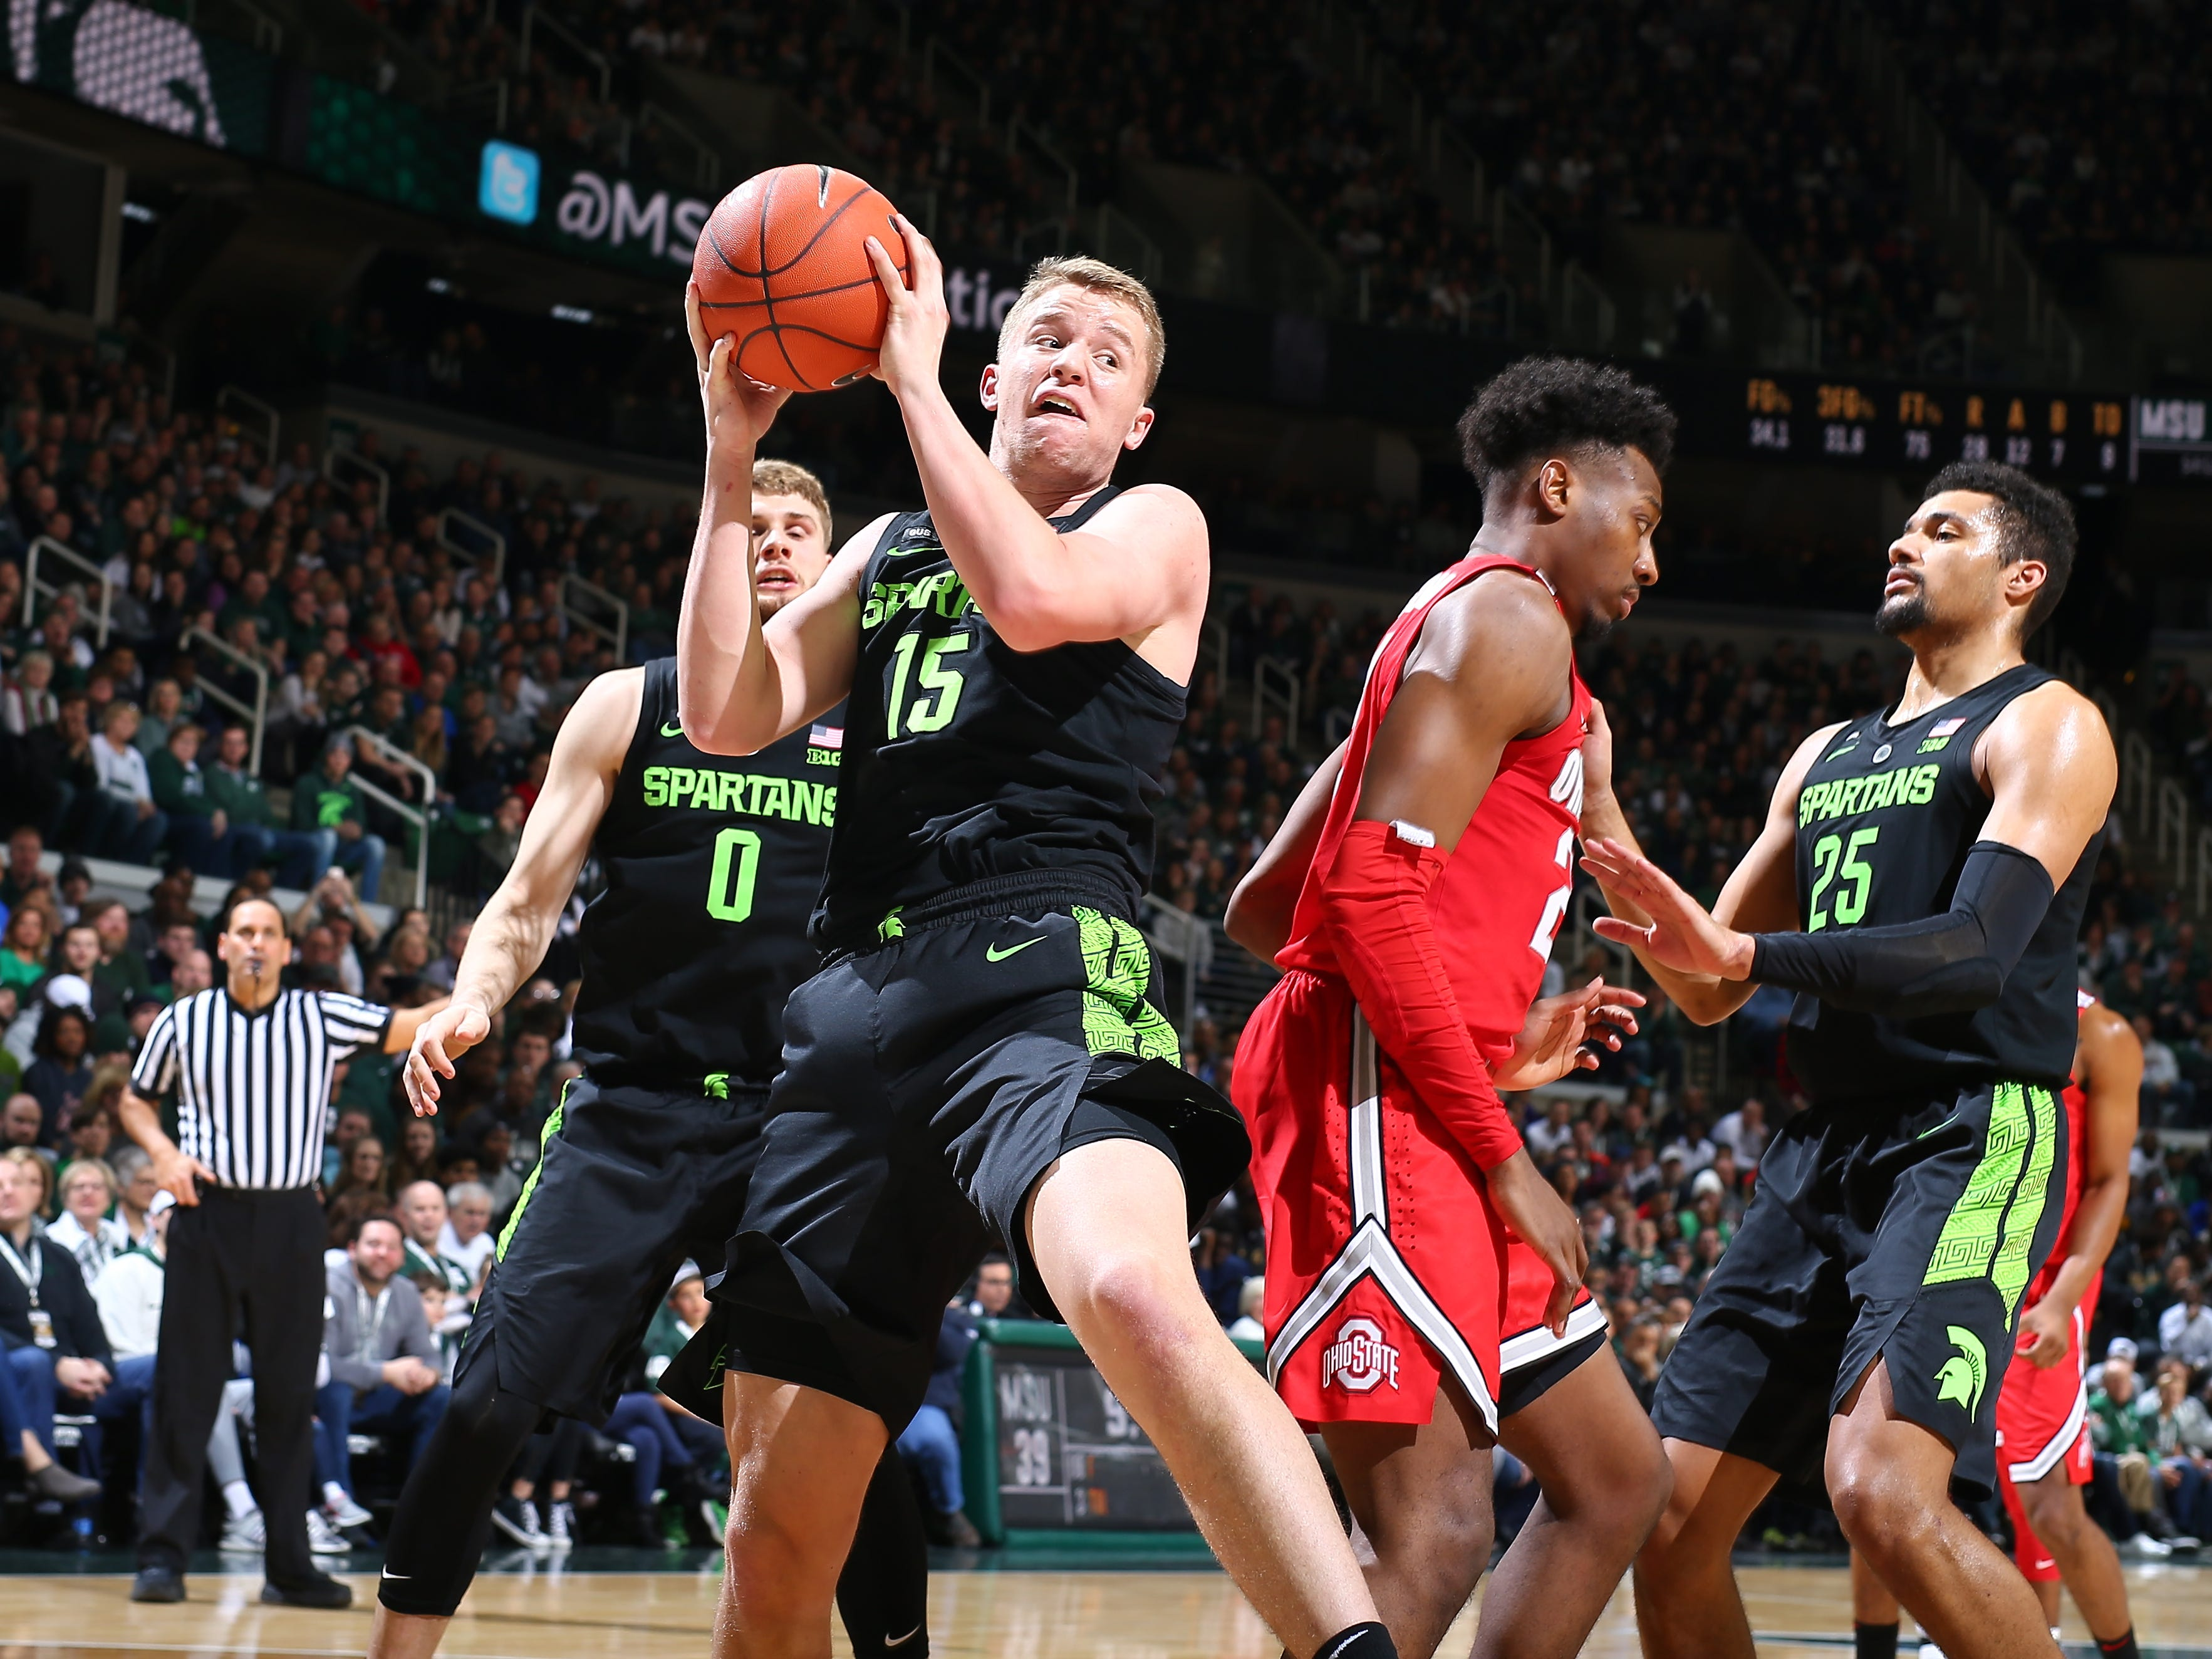 Michigan State's Thomas Kithier rebounds in the second half of the 62-44 win over Ohio State on Sunday, Feb. 17, 2019, in East Lansing.